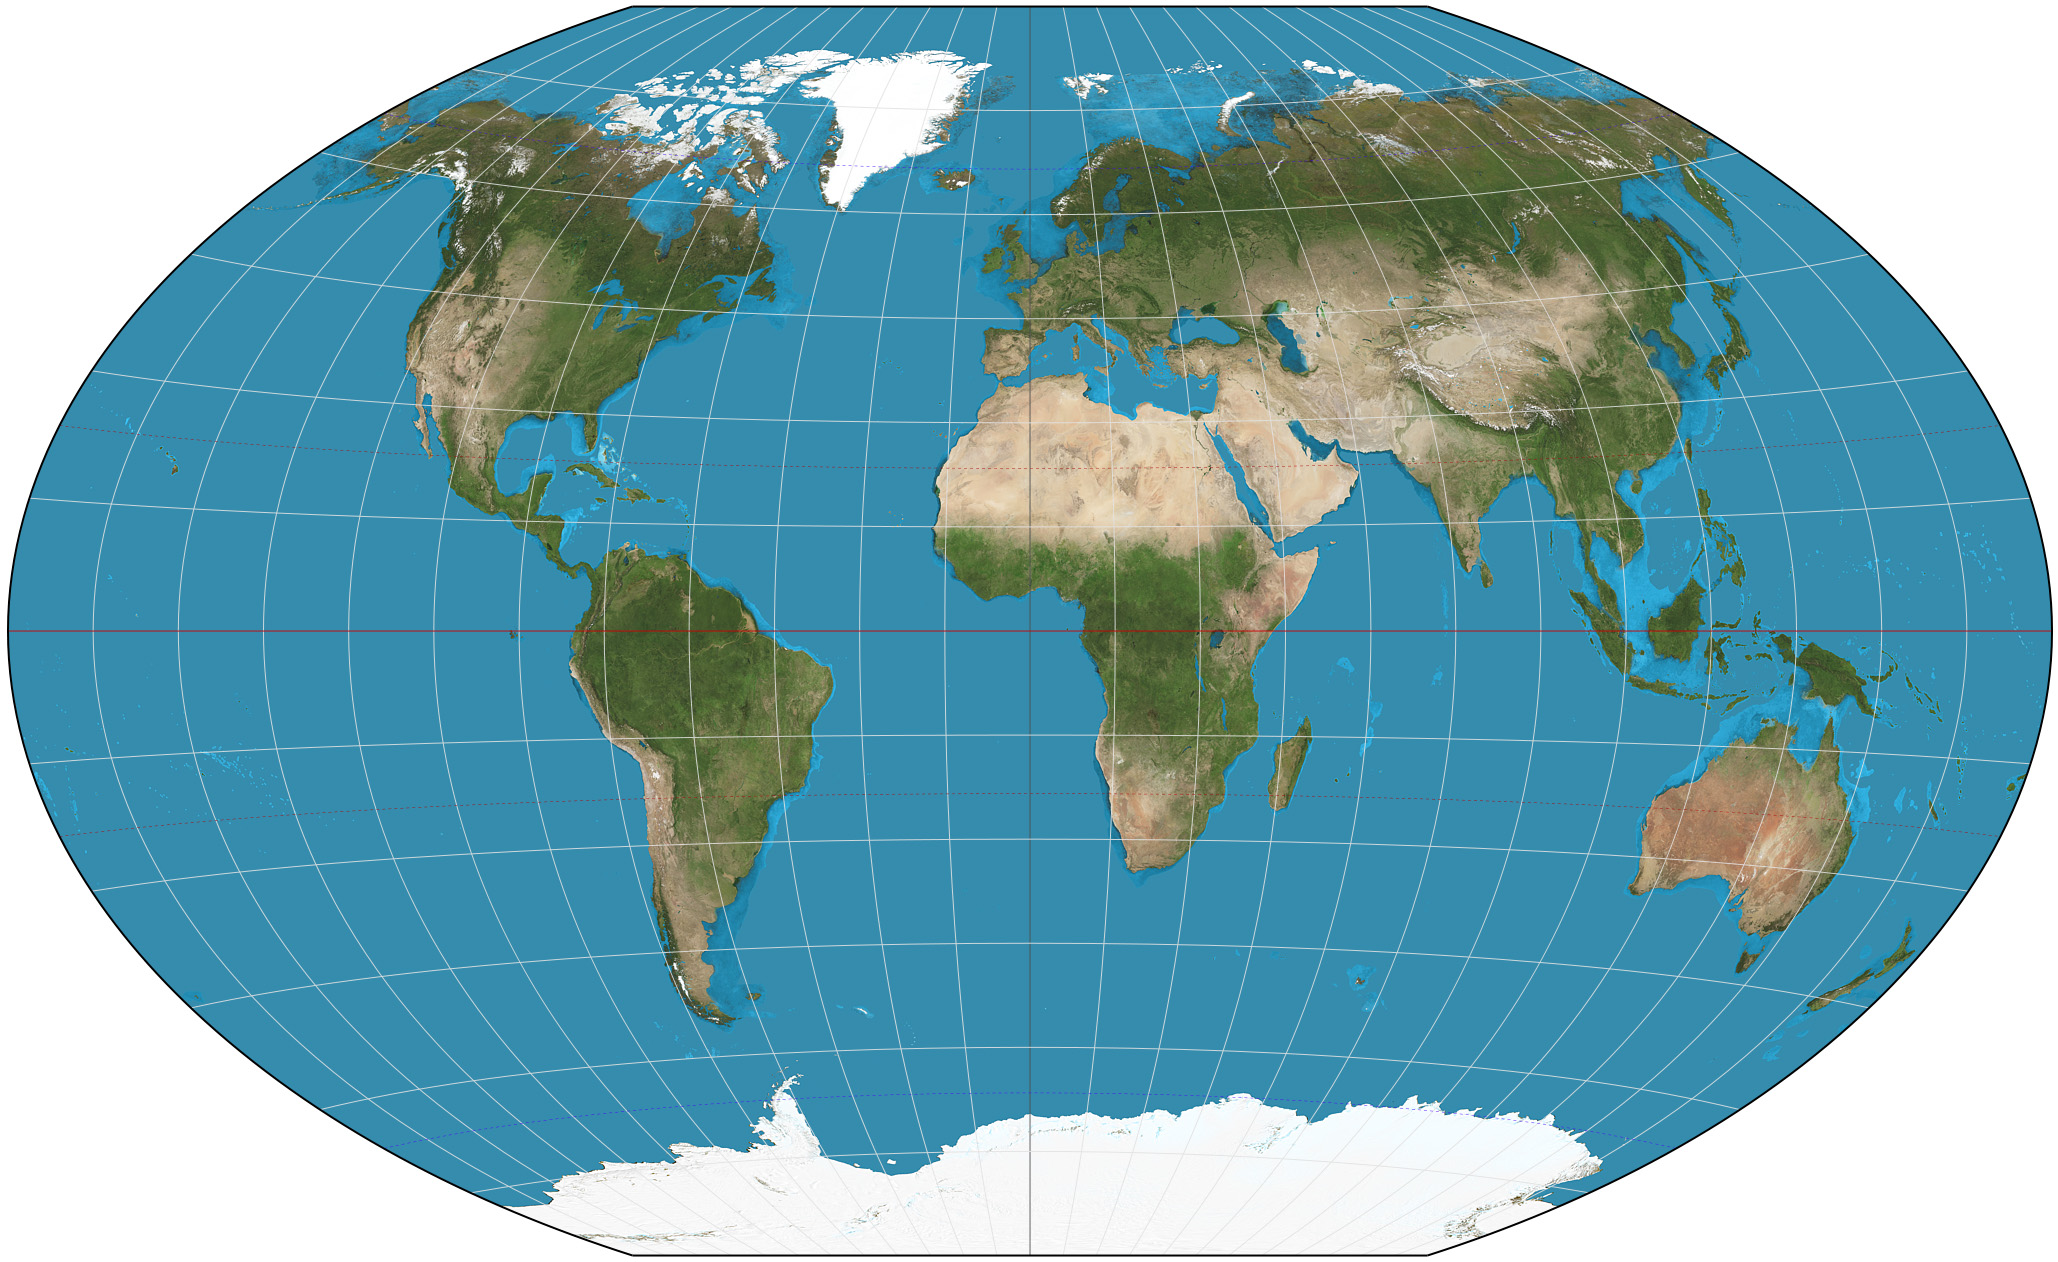 a world map on the winkel tripel projection a low error map projection adopted by the national geographic society for reference maps